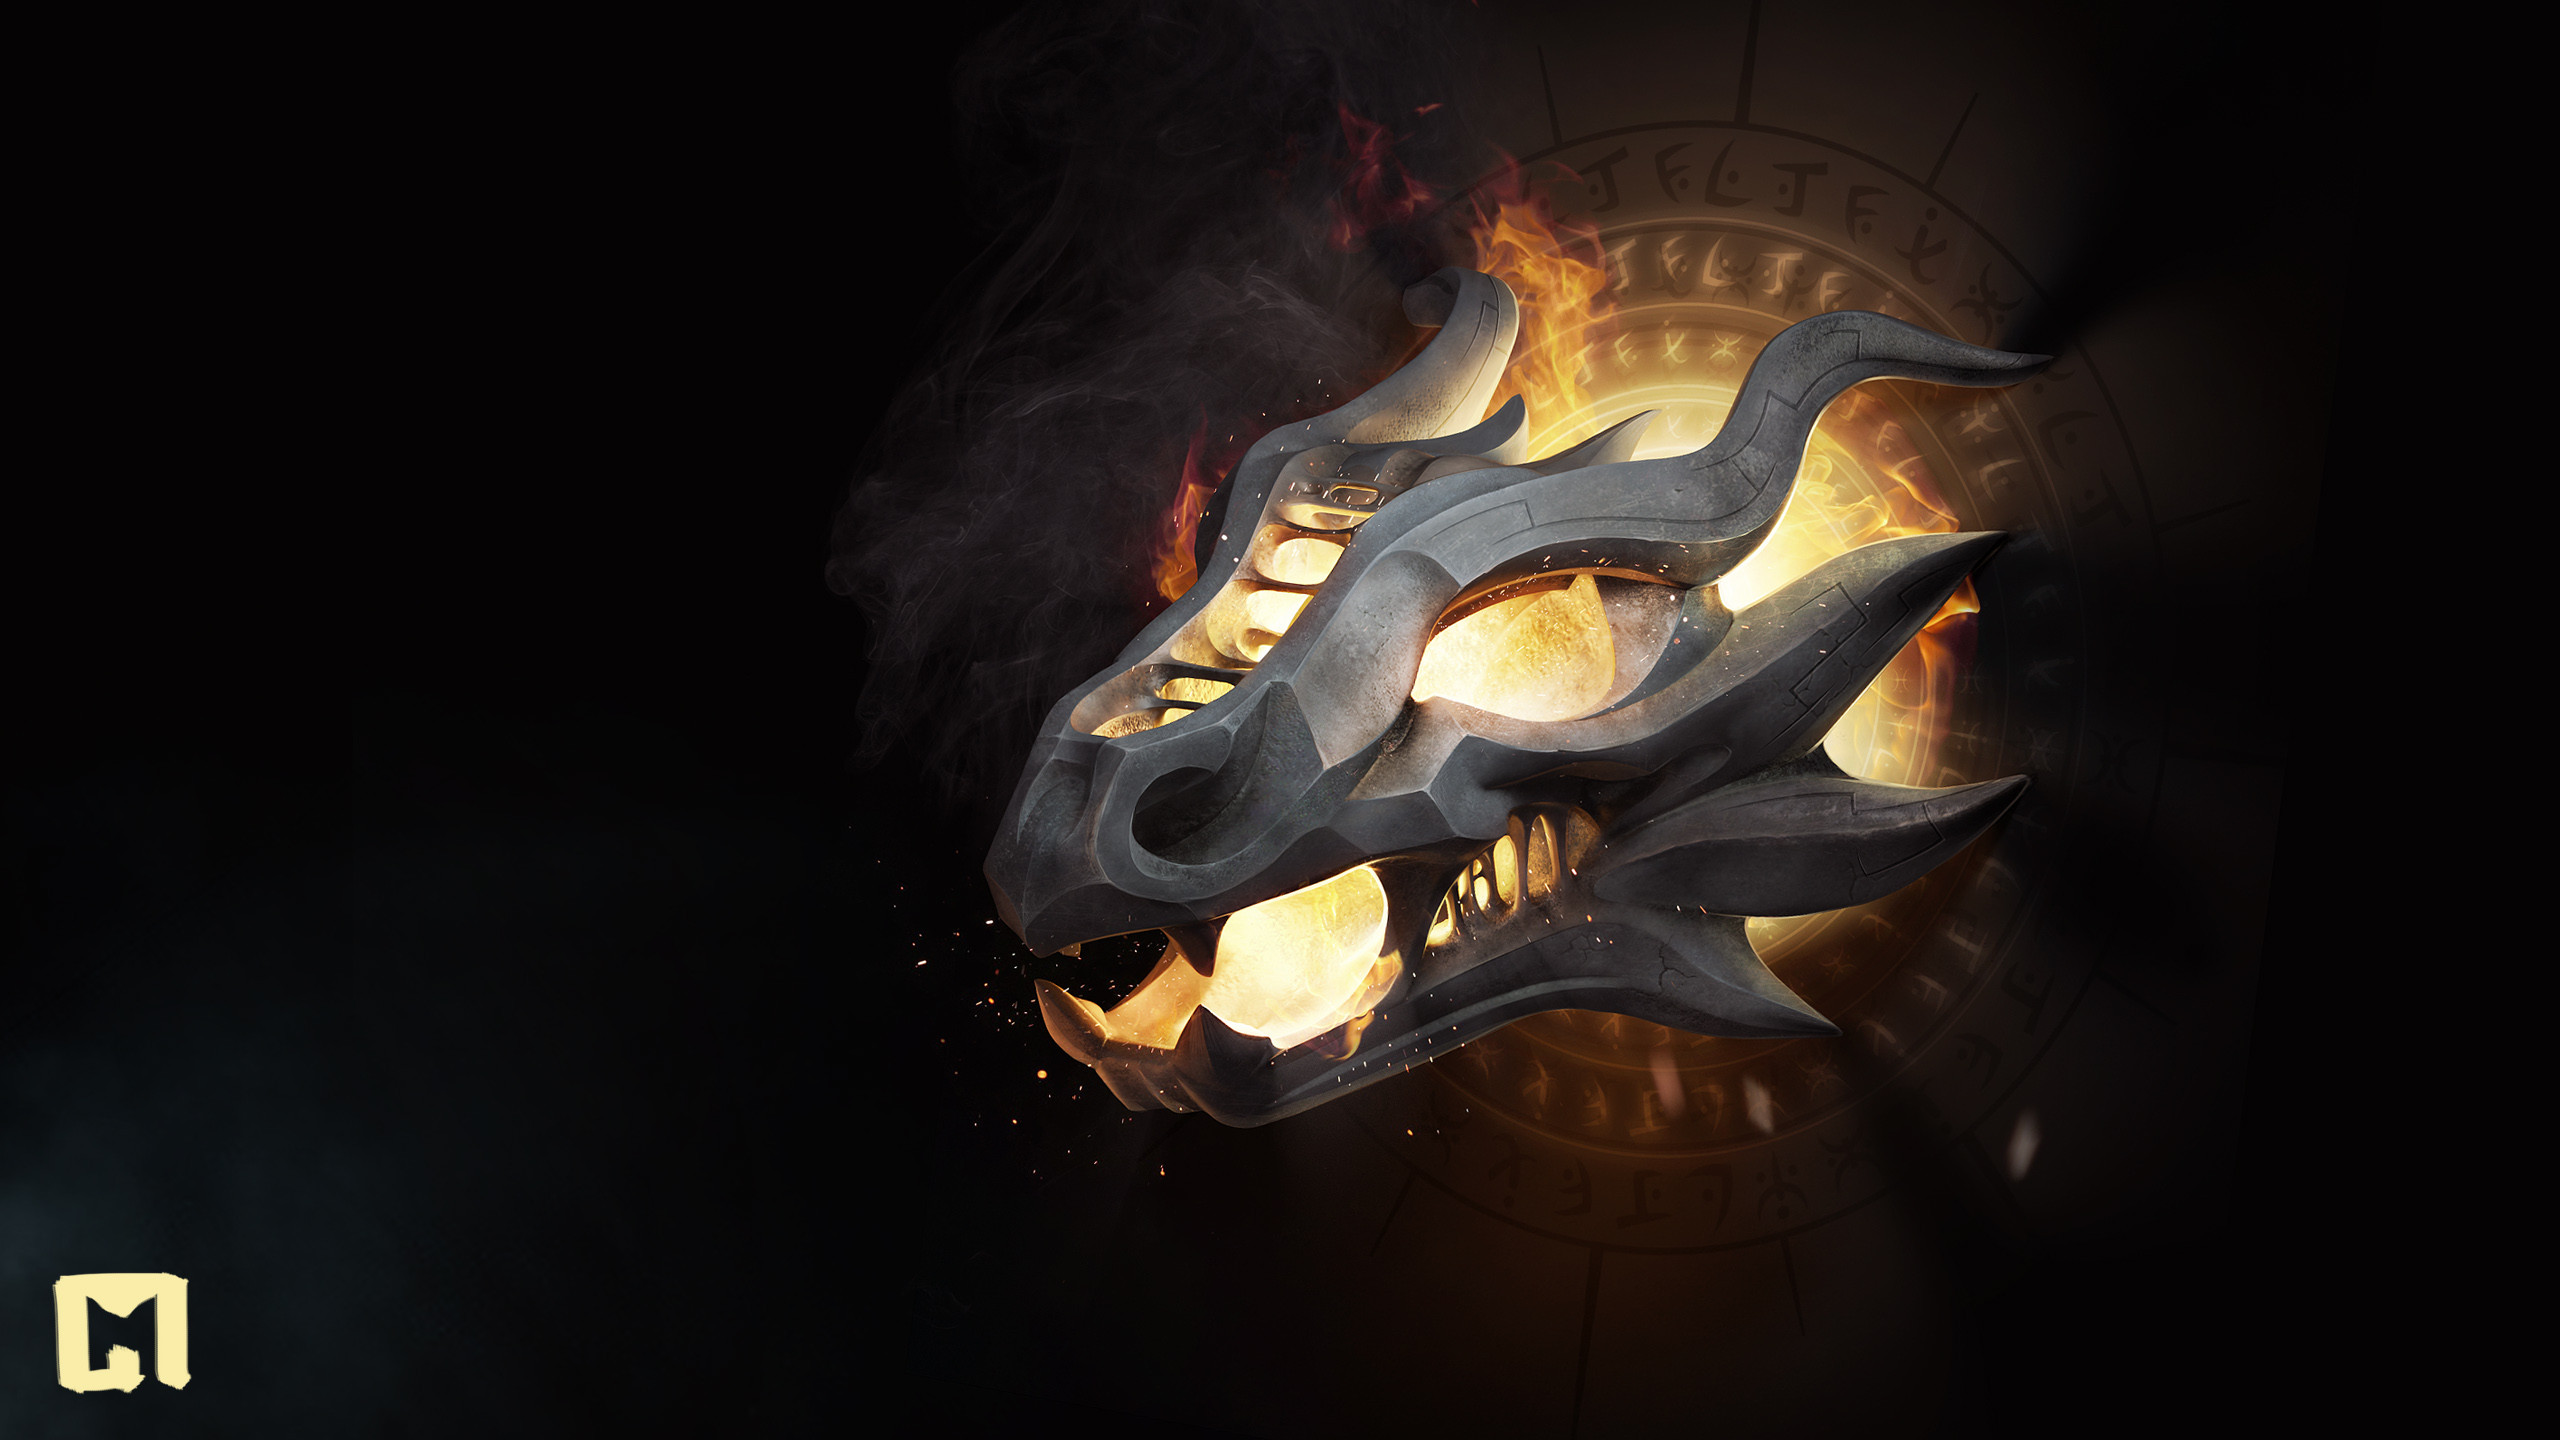 Dragon Games Of Thrones Hd - HD Wallpaper